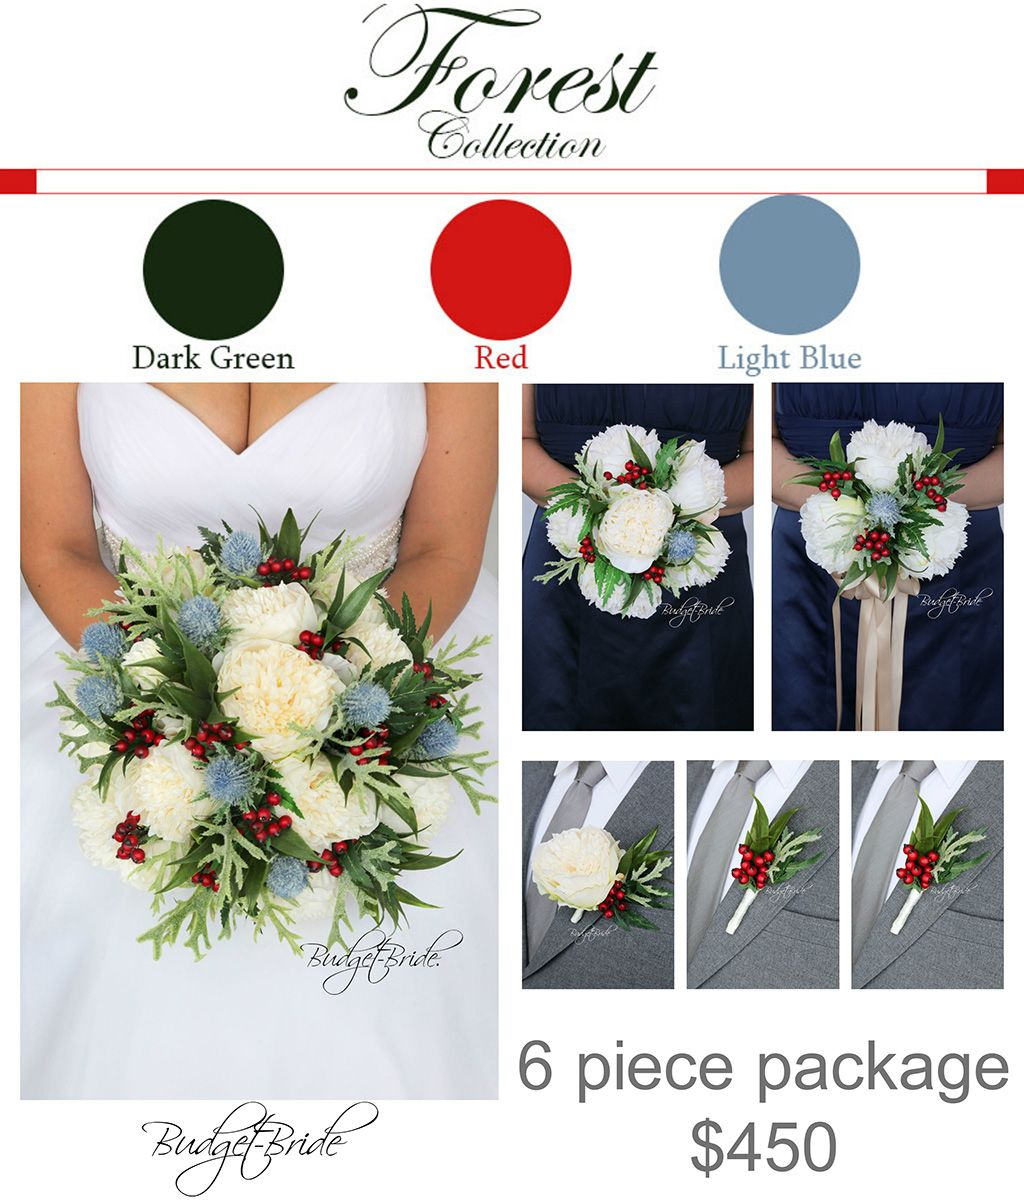 Thistle Davids Bridal Wedding Flowers Forest Ideas Red Berries Package Affordable Cheap Fake Order Wedding Flowers Bridal Wedding Flowers Green Wedding Flowers